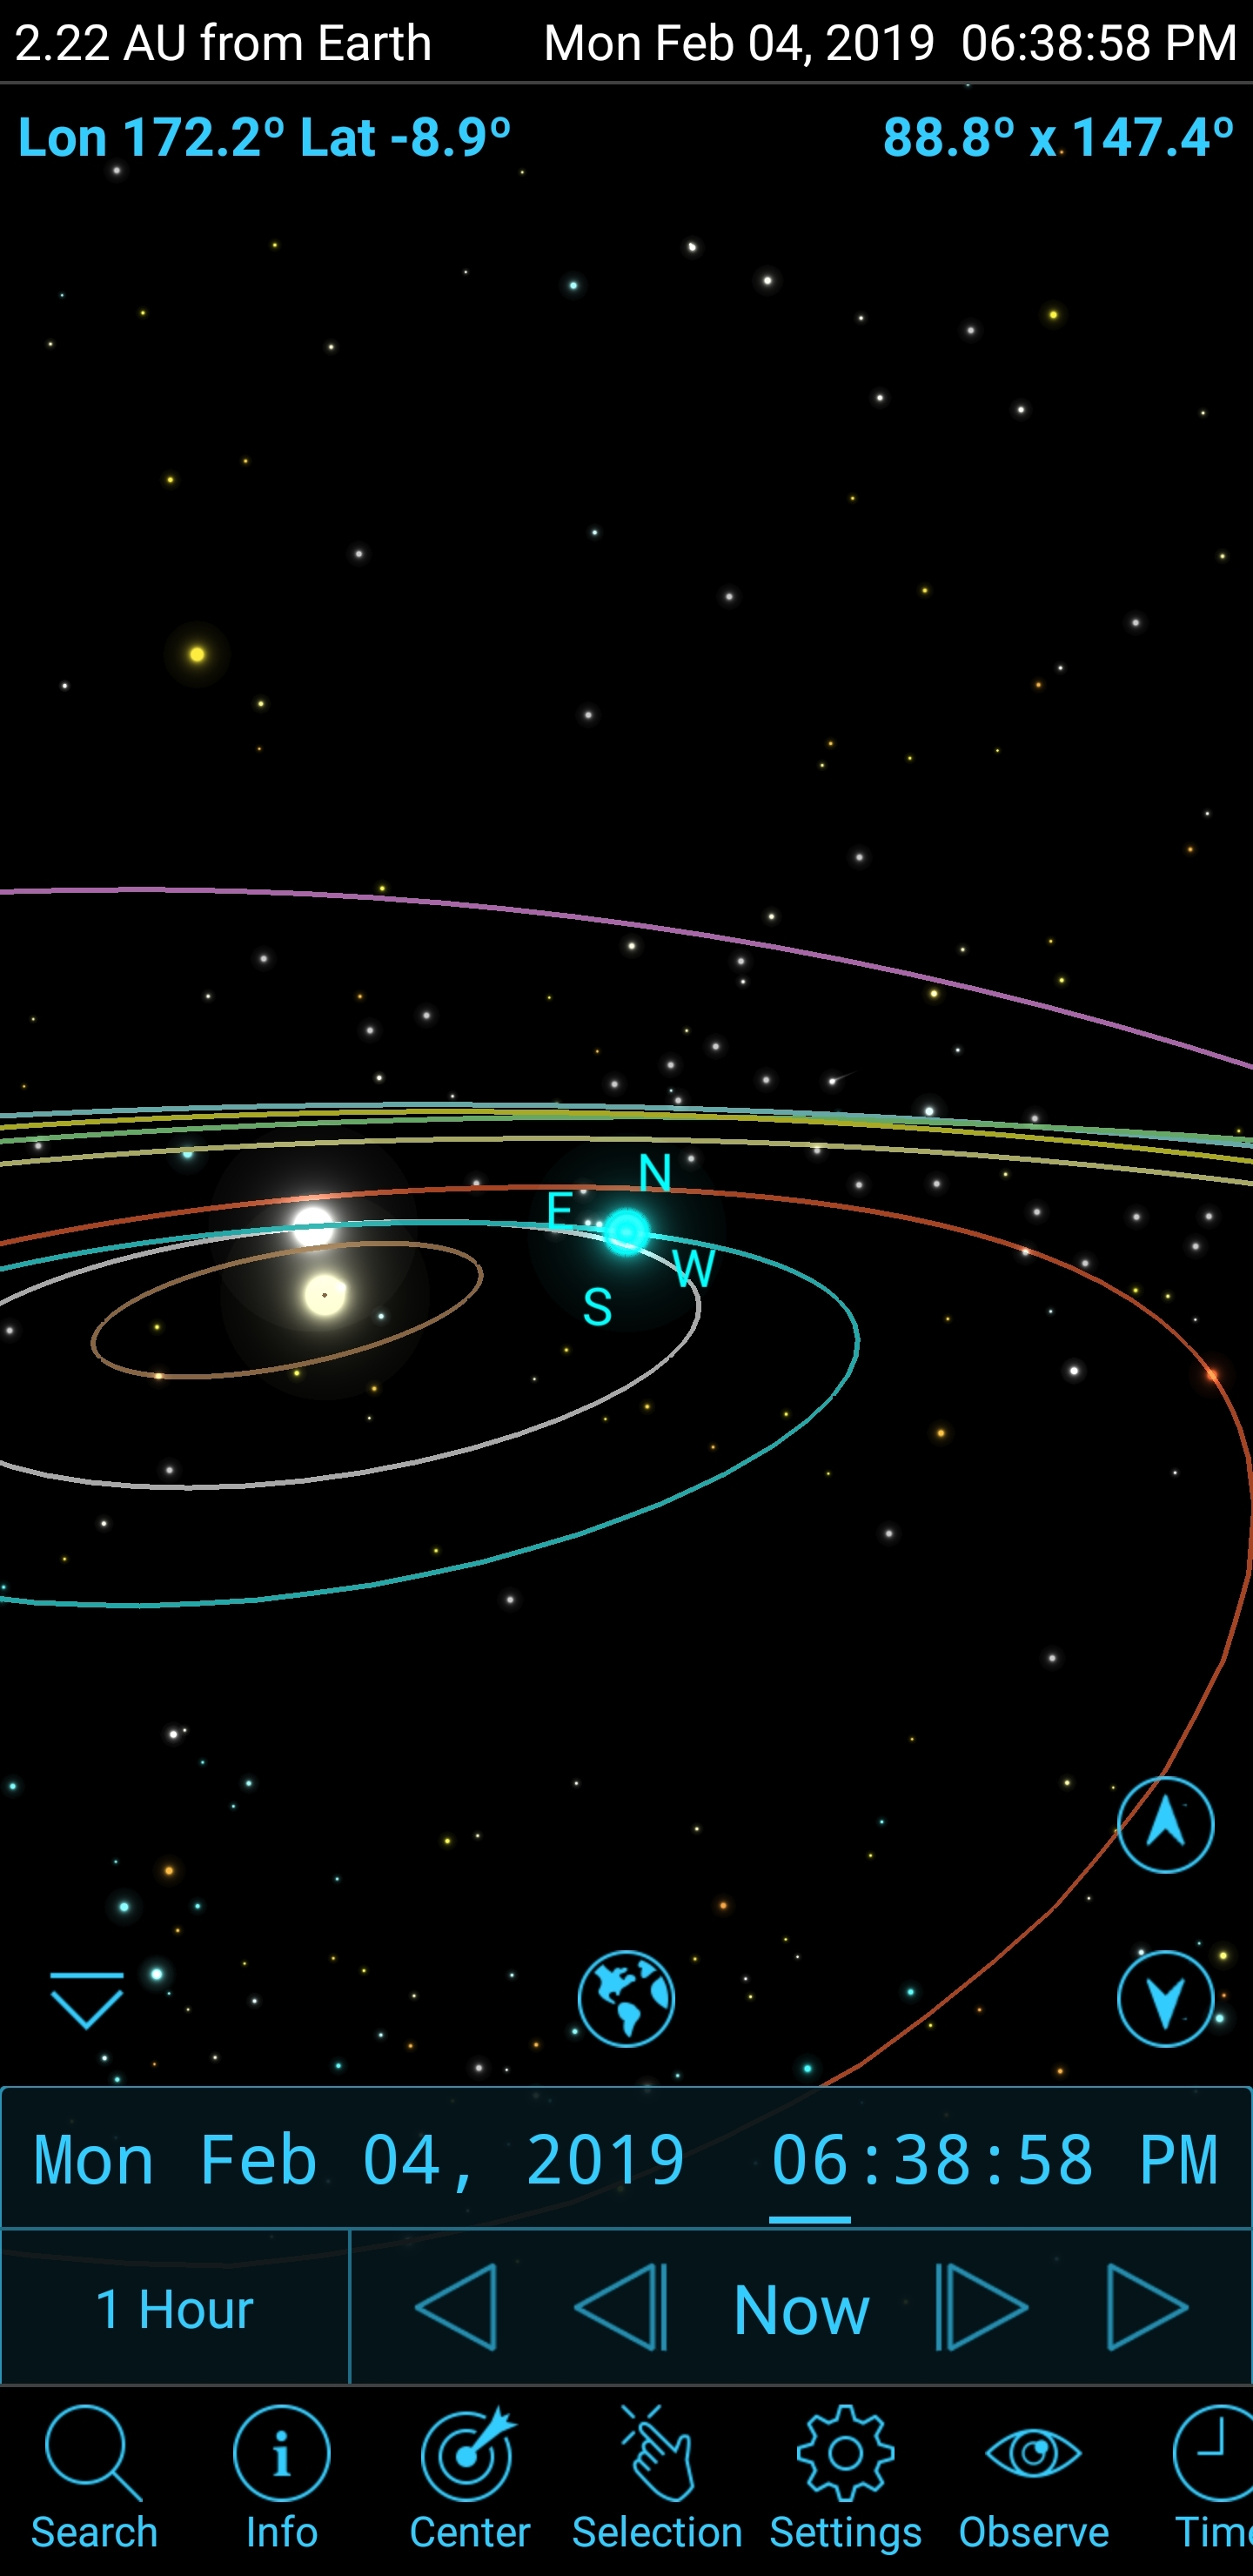 Solar system planetary positions - Getting Started With